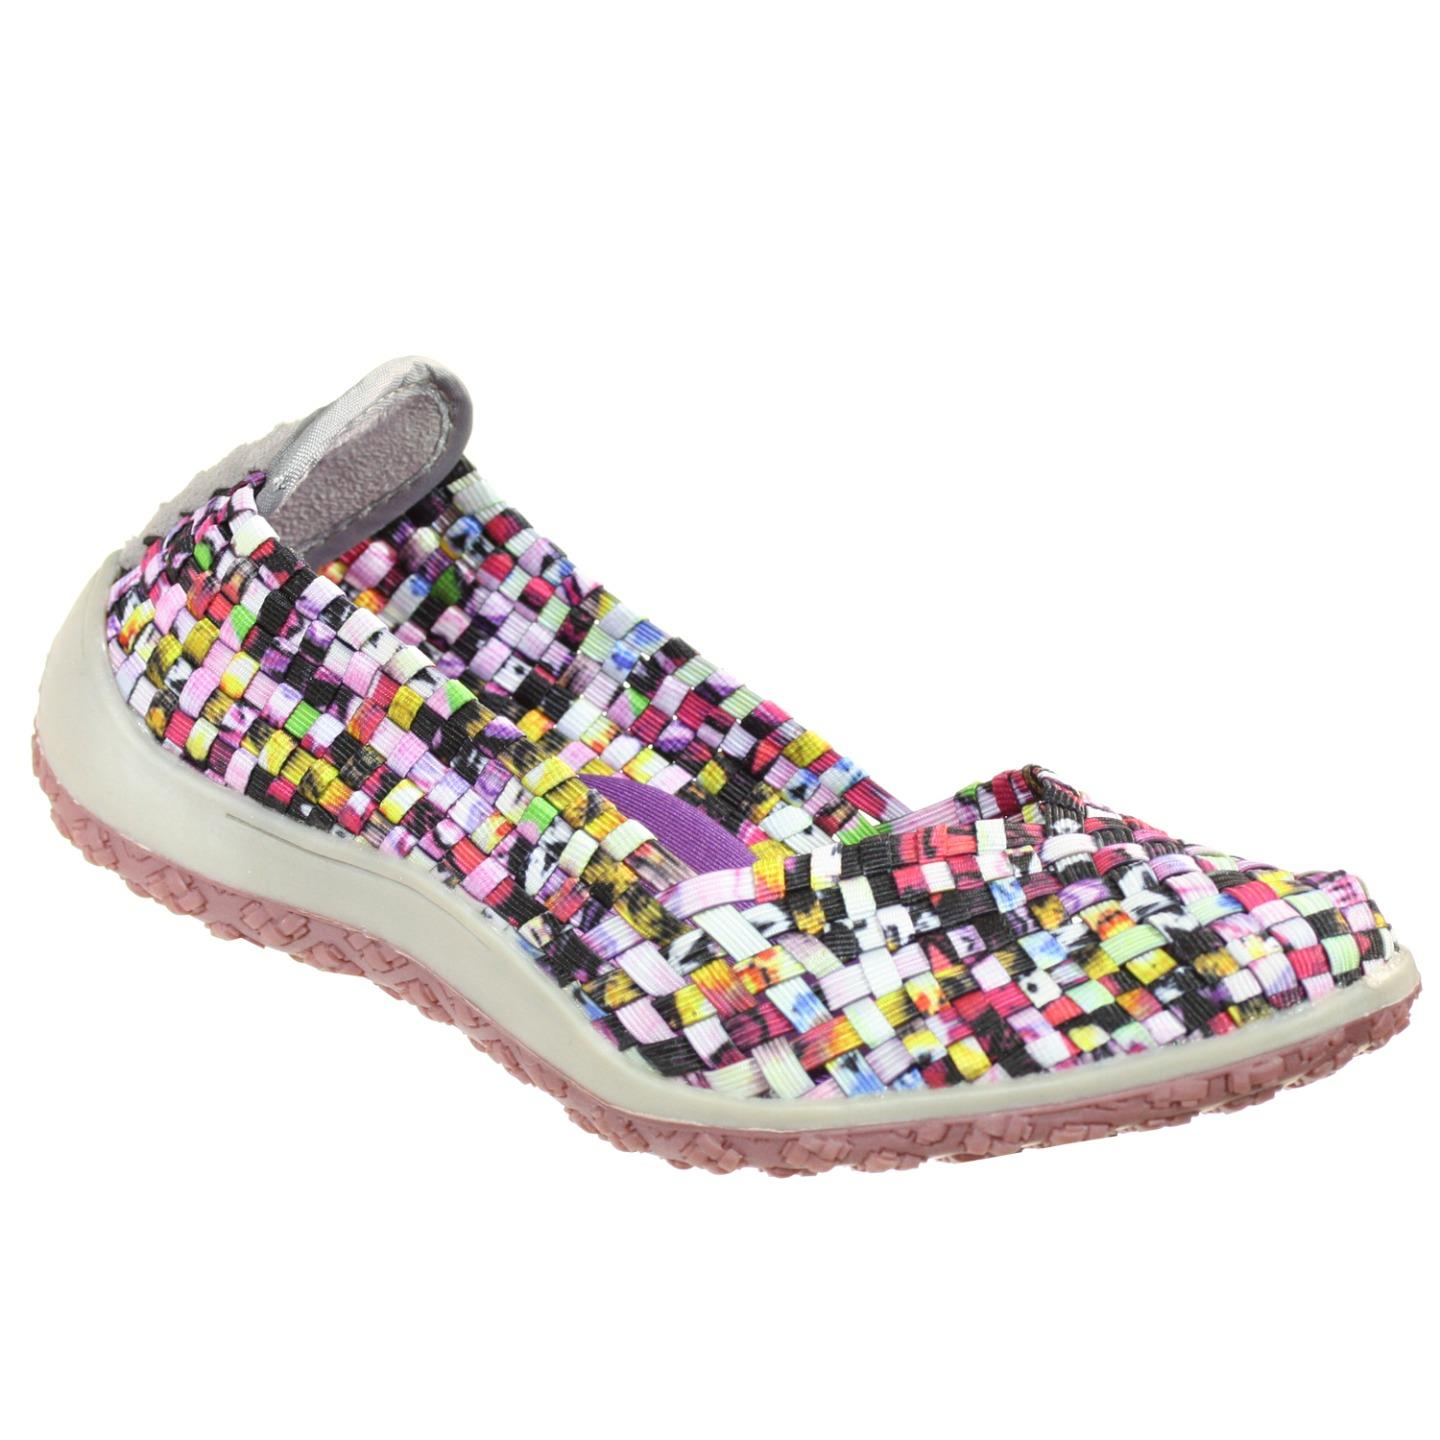 Zee Alexis Spice Womens Woven Slip On Shoes Mosaic Multi 6 M